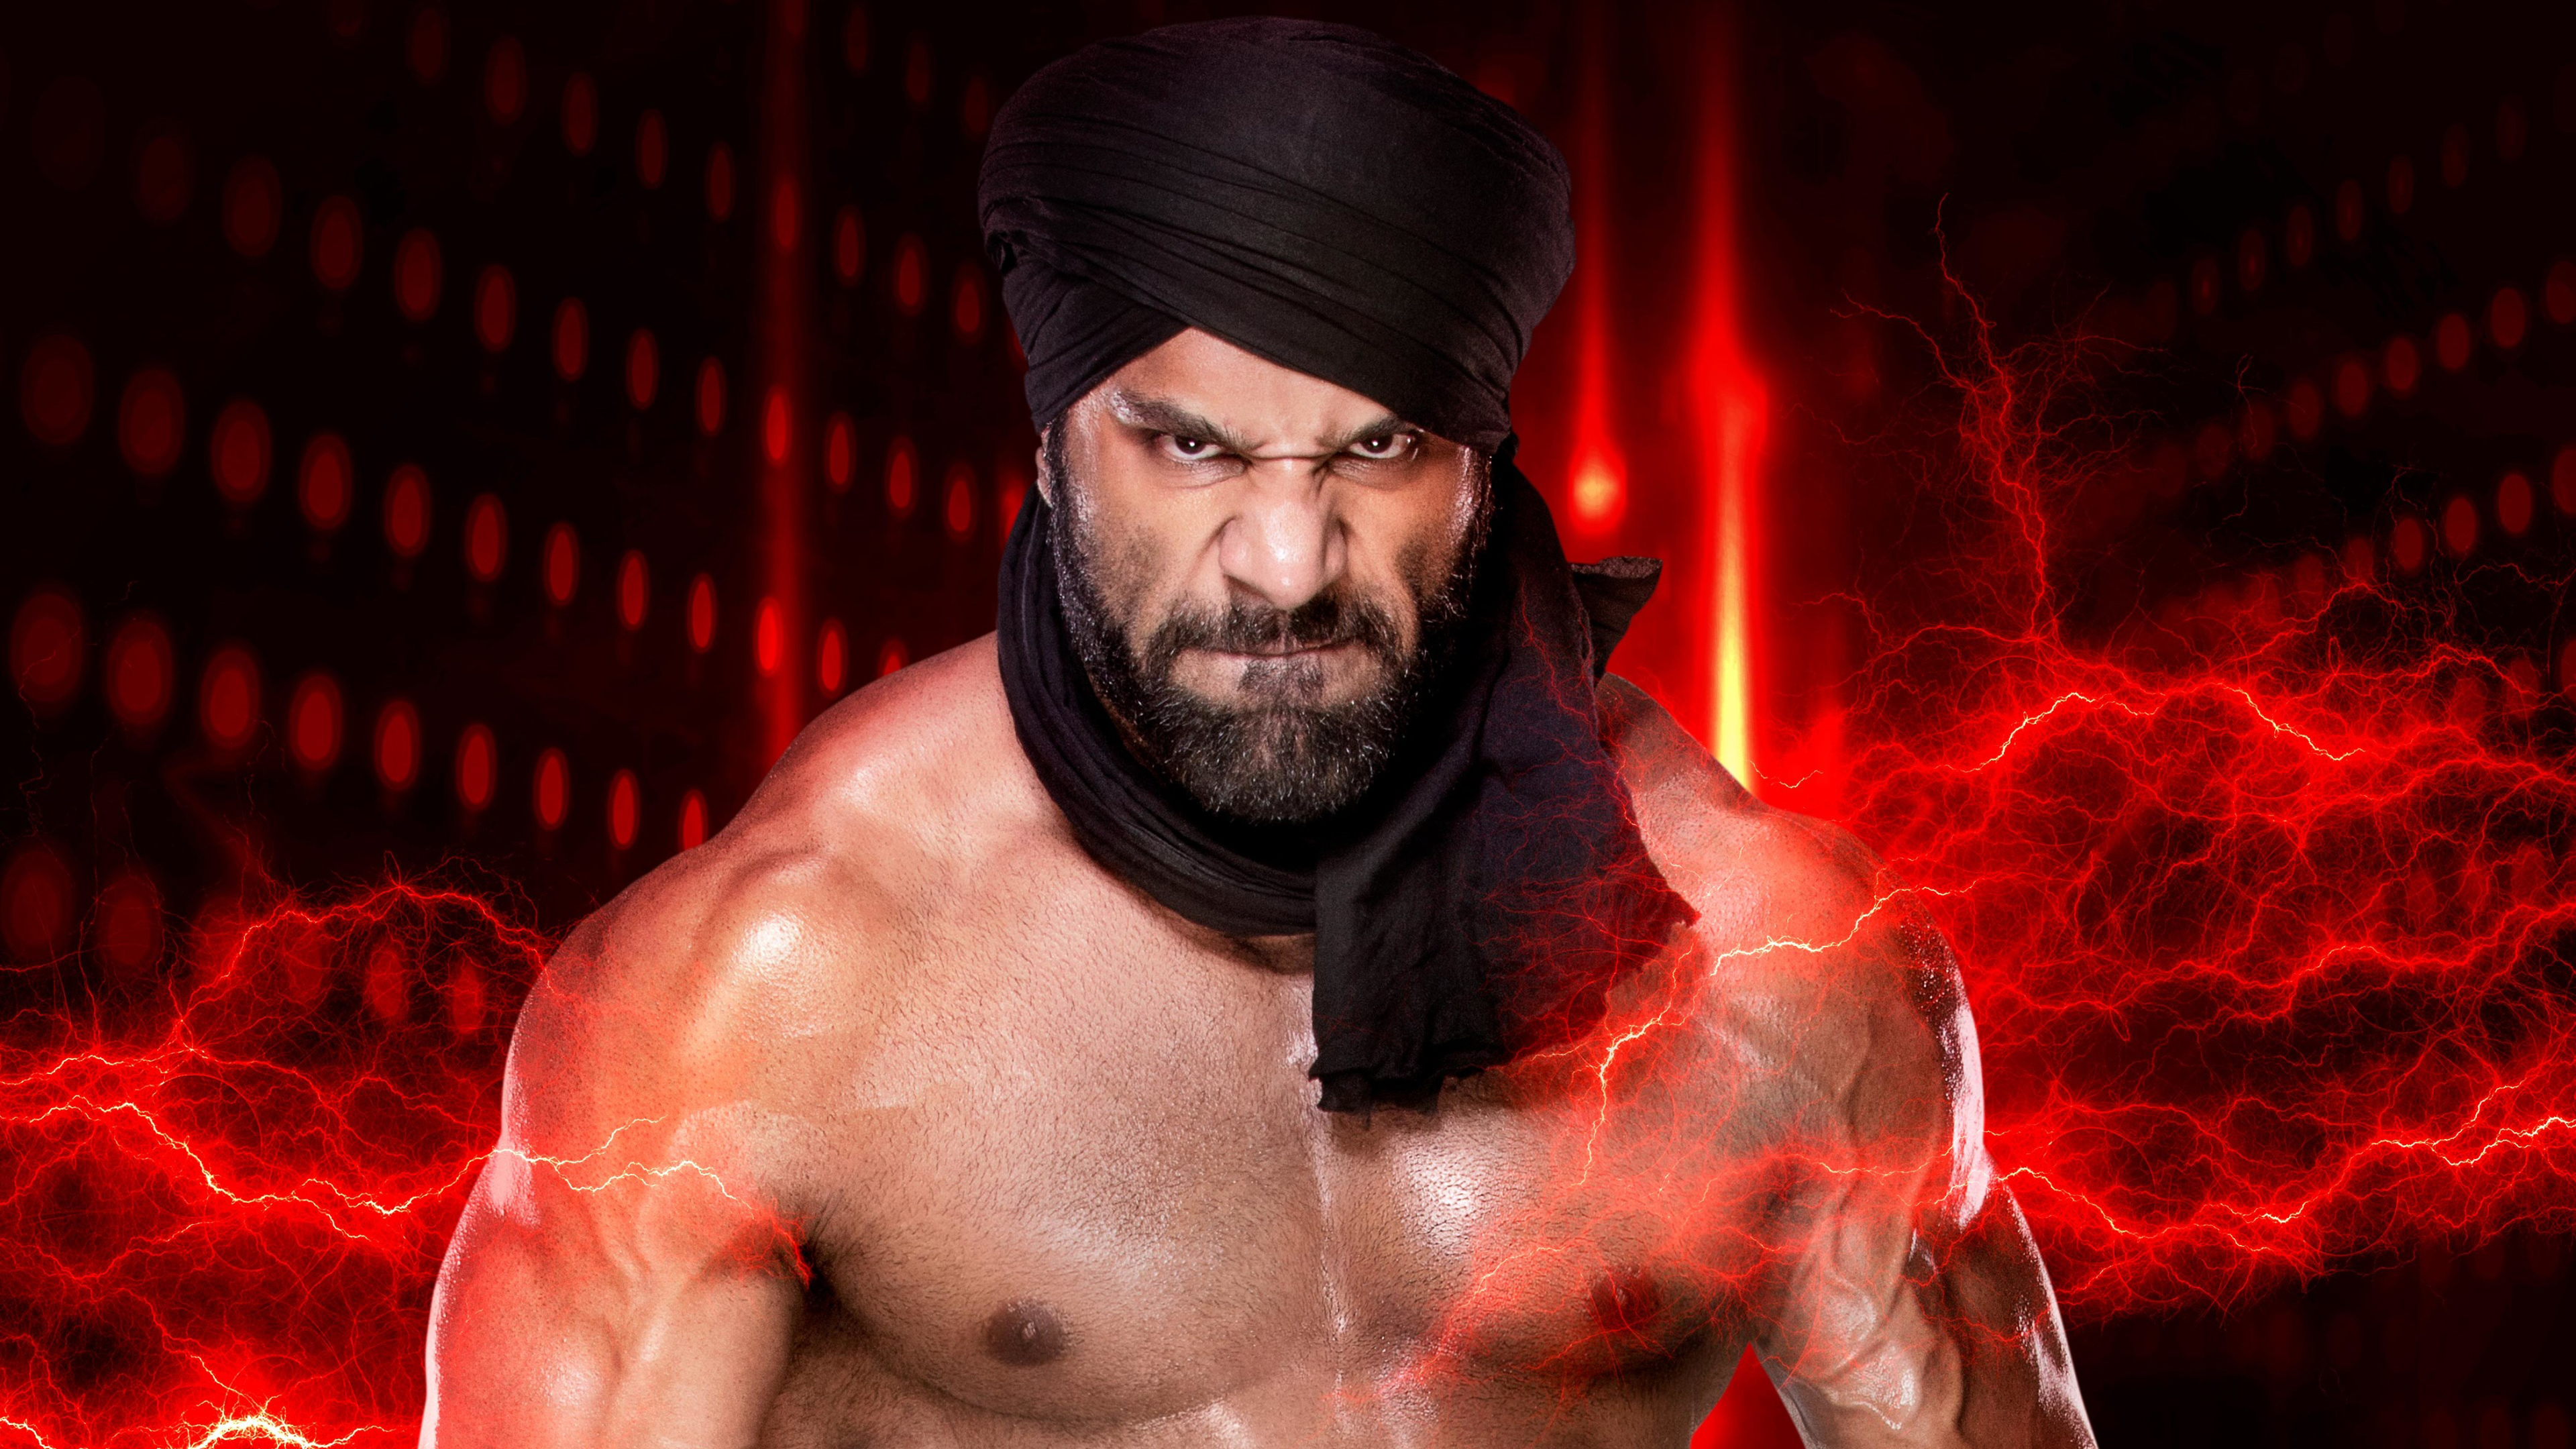 jinder mahal wwe 2k19 1537691964 - Jinder Mahal WWE 2K19 - wwe wallpapers, wwe 2k19 wallpapers, jinder mahal wallpapers, hd-wallpapers, games wallpapers, 4k-wallpapers, 2019 games wallpapers